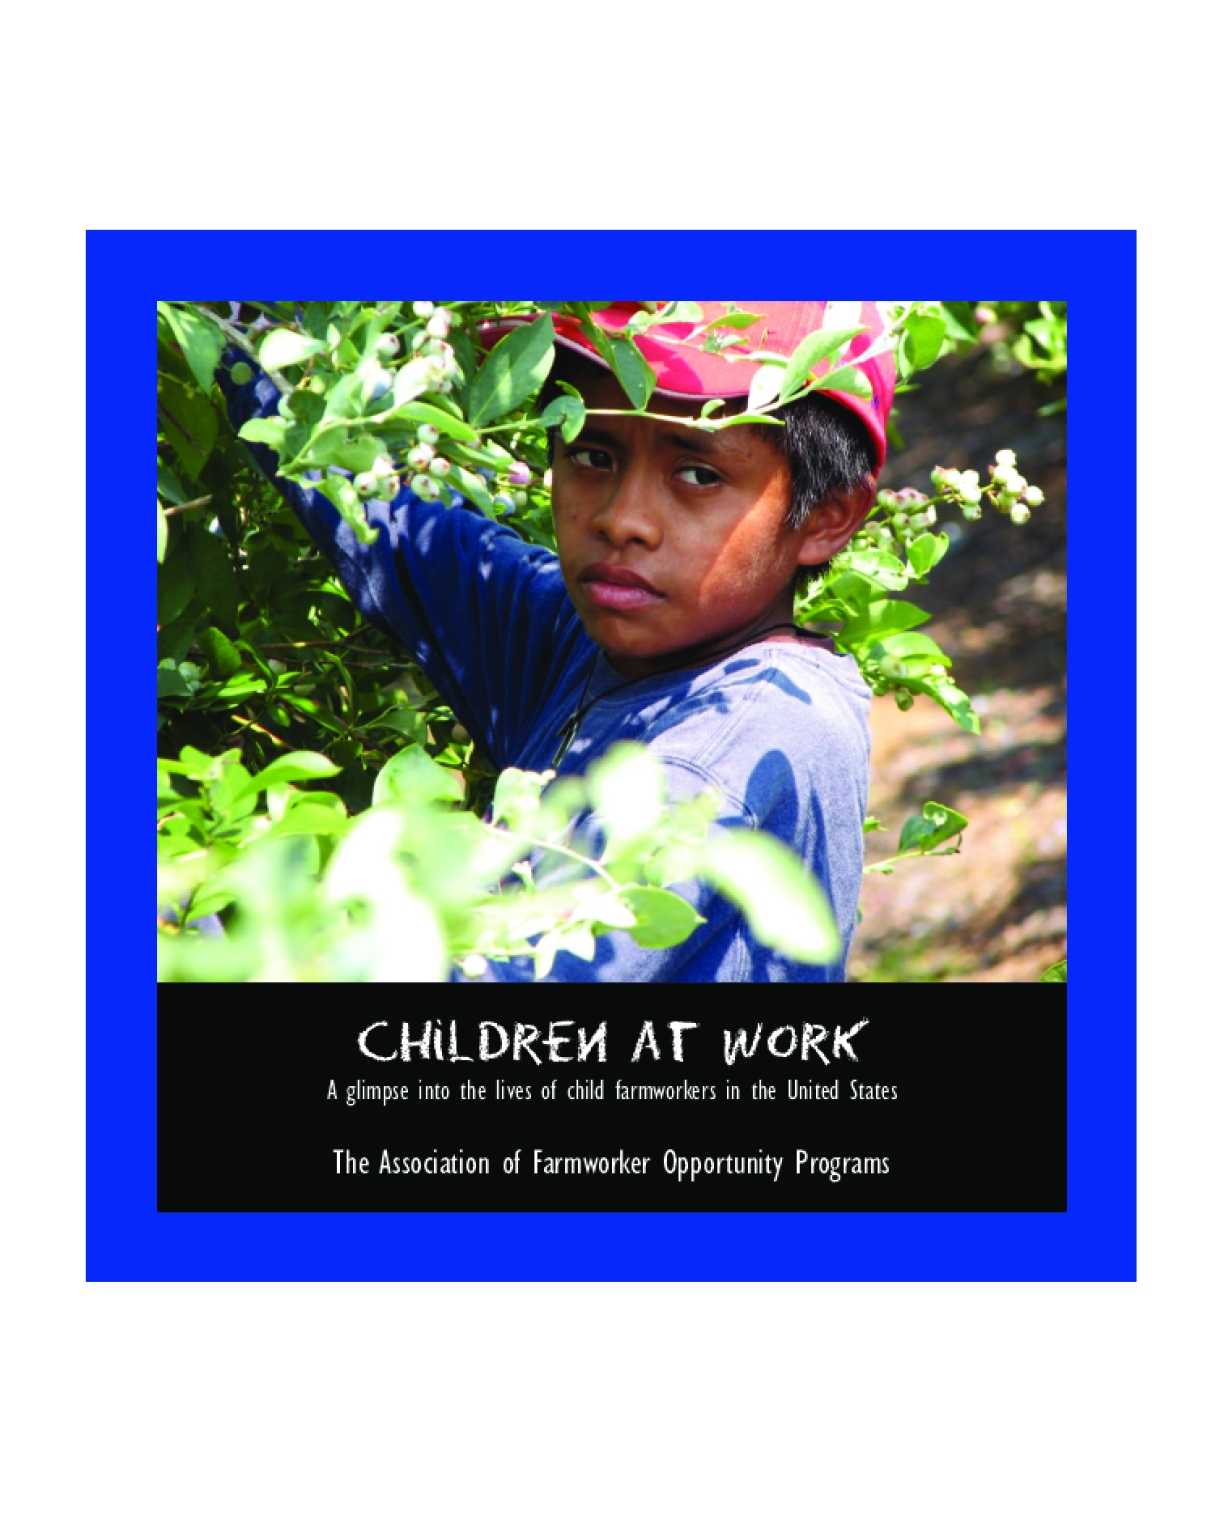 Children at Work: A Glimpse Into the Lives of Child Farmworkers in the United States